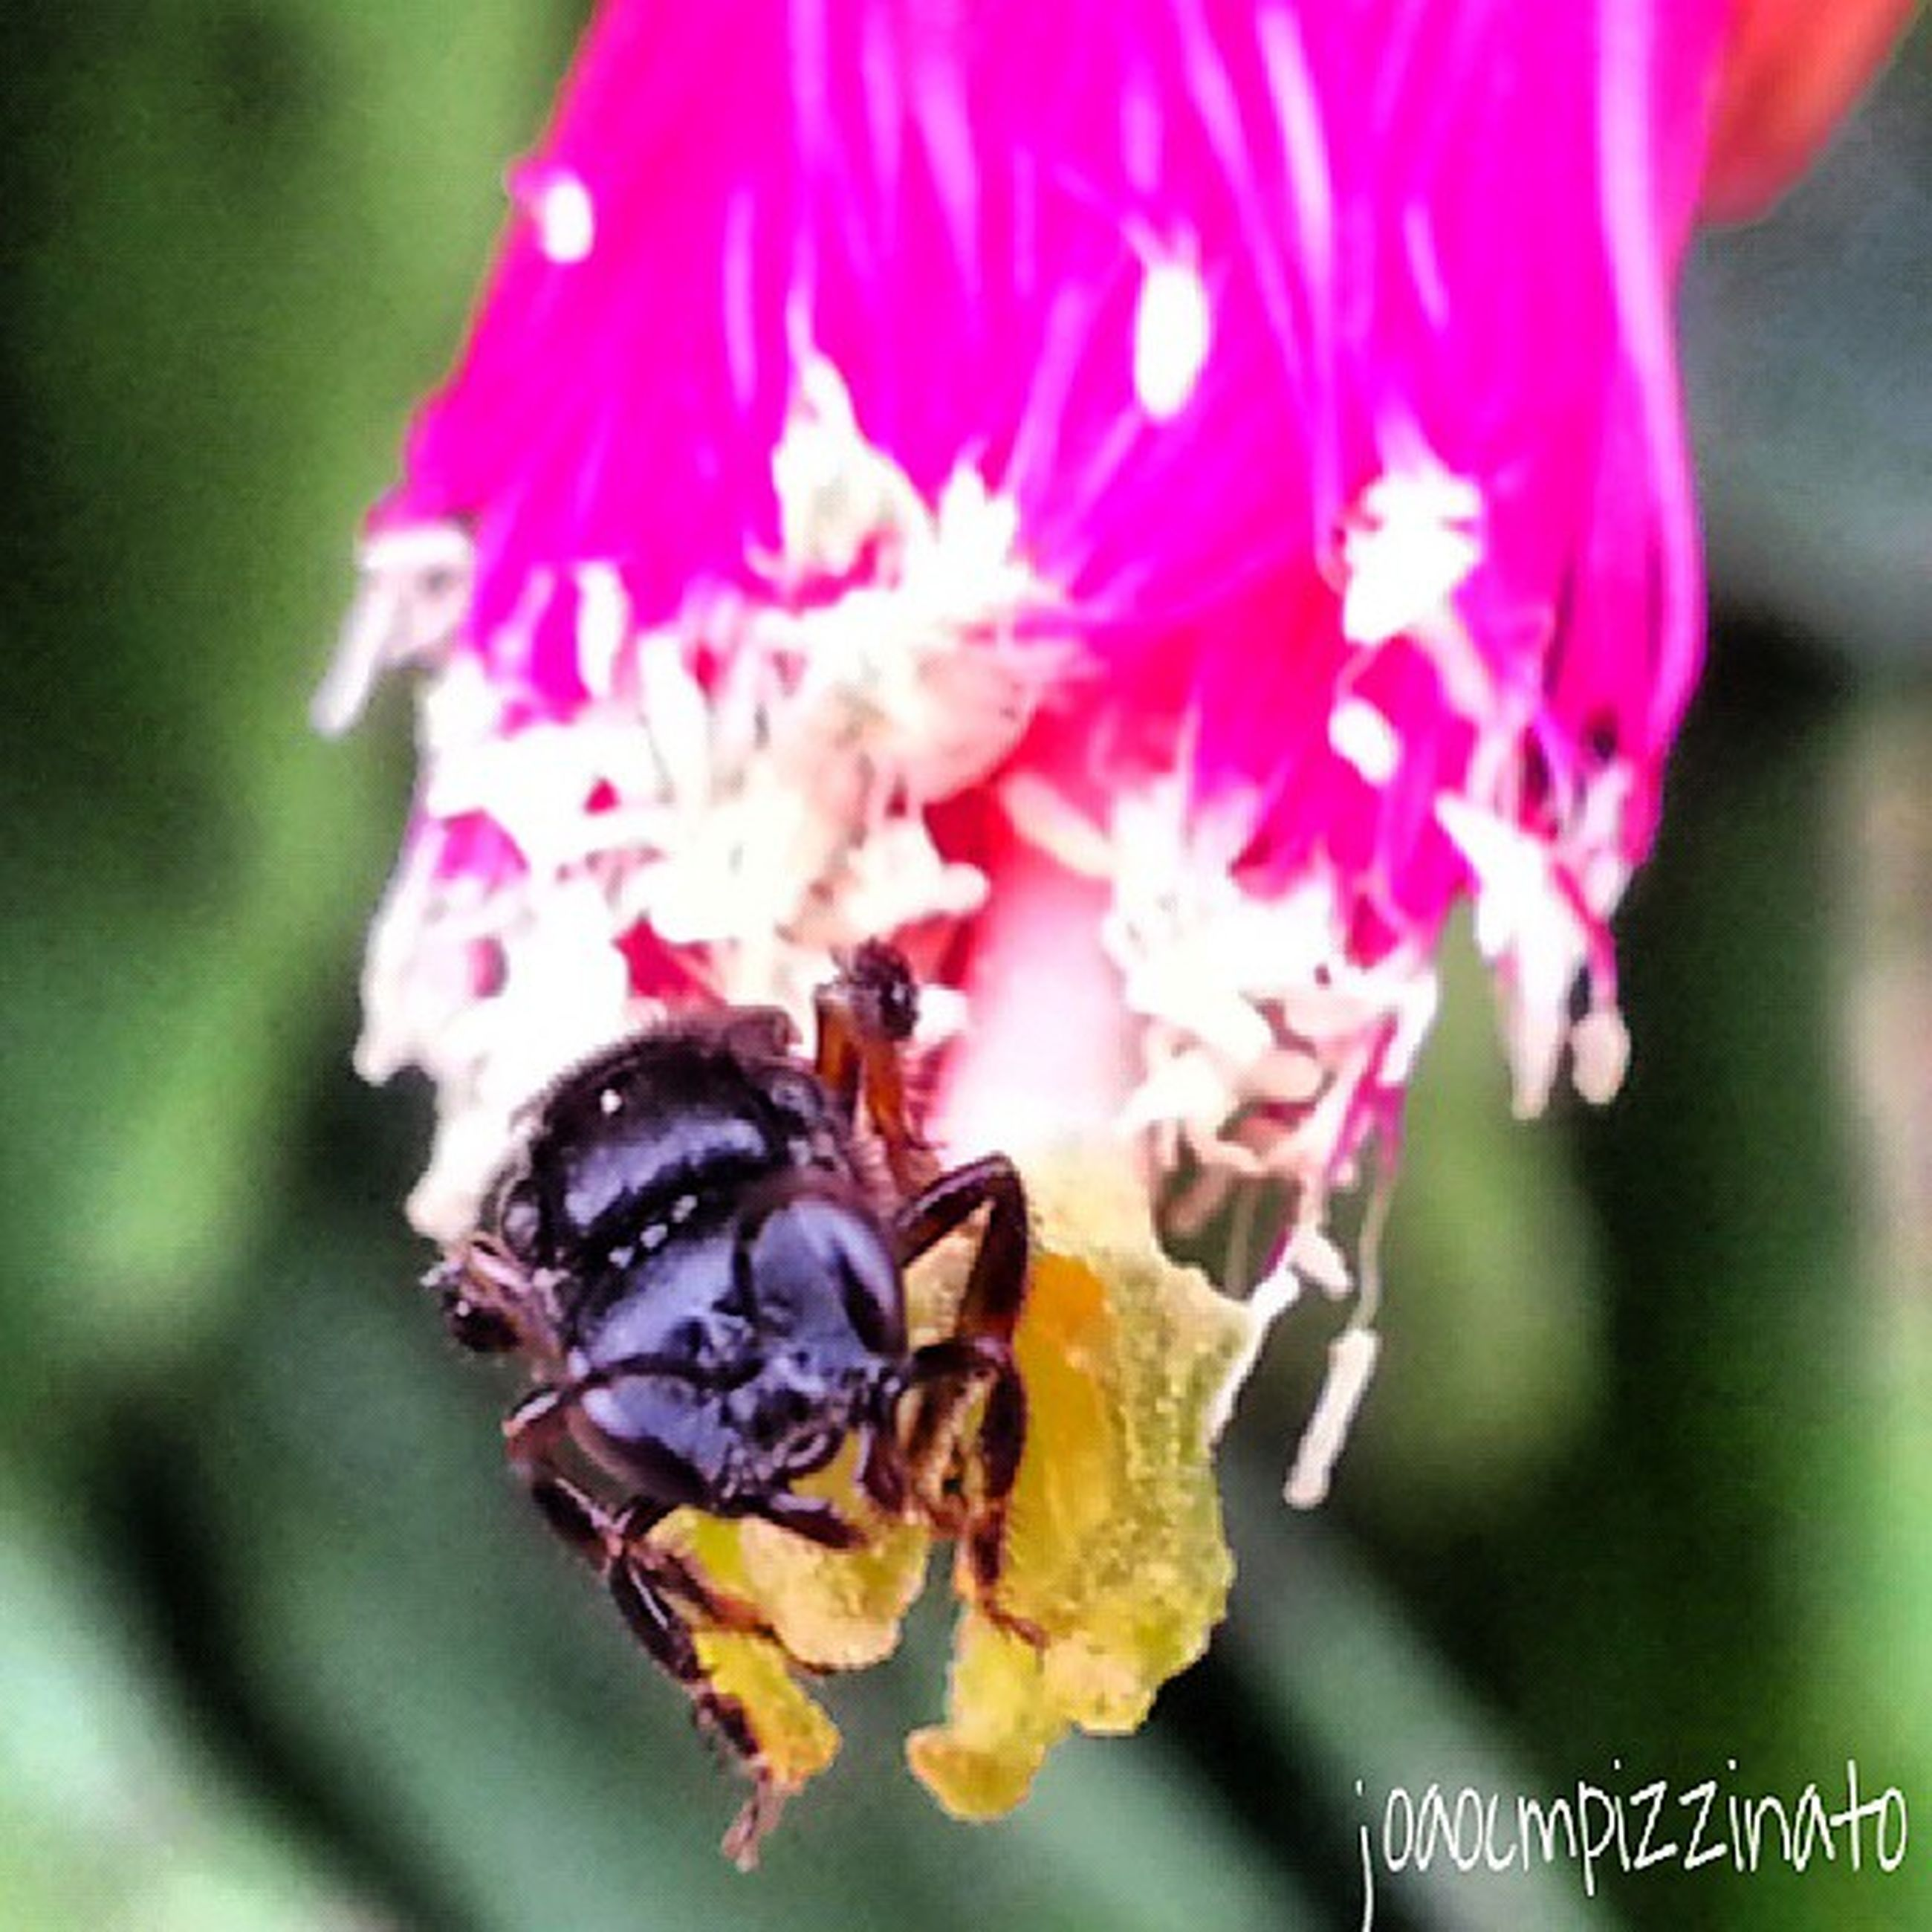 flower, freshness, close-up, insect, petal, focus on foreground, fragility, flower head, one animal, beauty in nature, animal themes, animals in the wild, nature, selective focus, wildlife, growth, pink color, no people, day, blooming